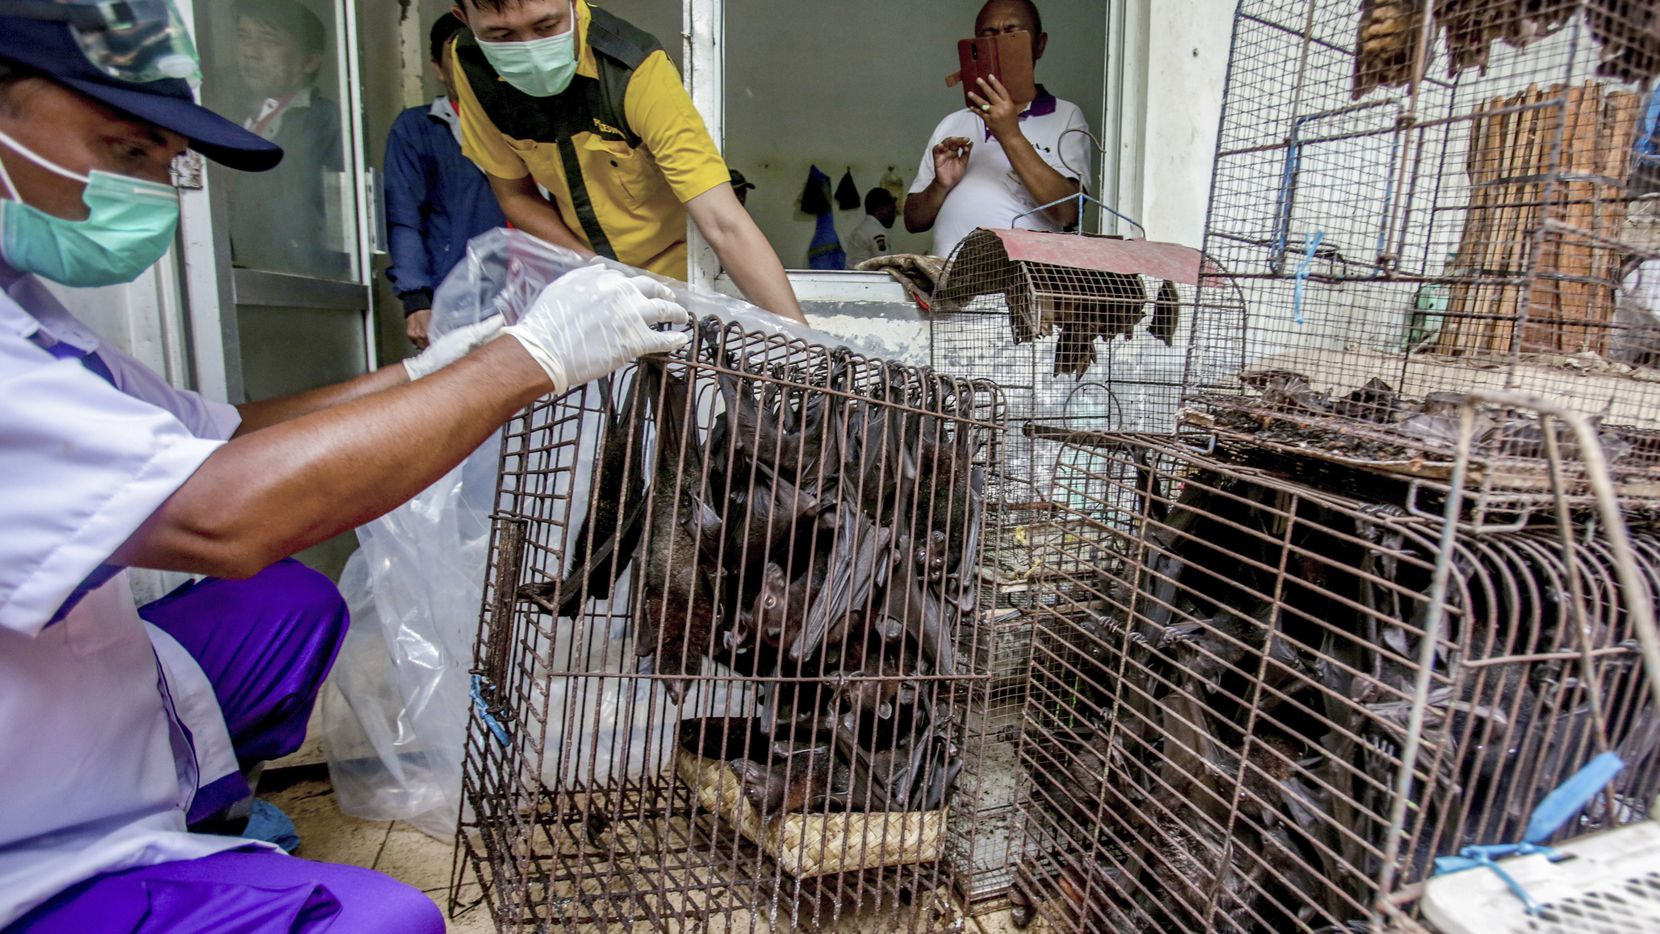 Health officials inspect bats to be confiscated and culled in the wake of coronavirus outbreak at a live animal market in Solo, Central Java, Indonesia.